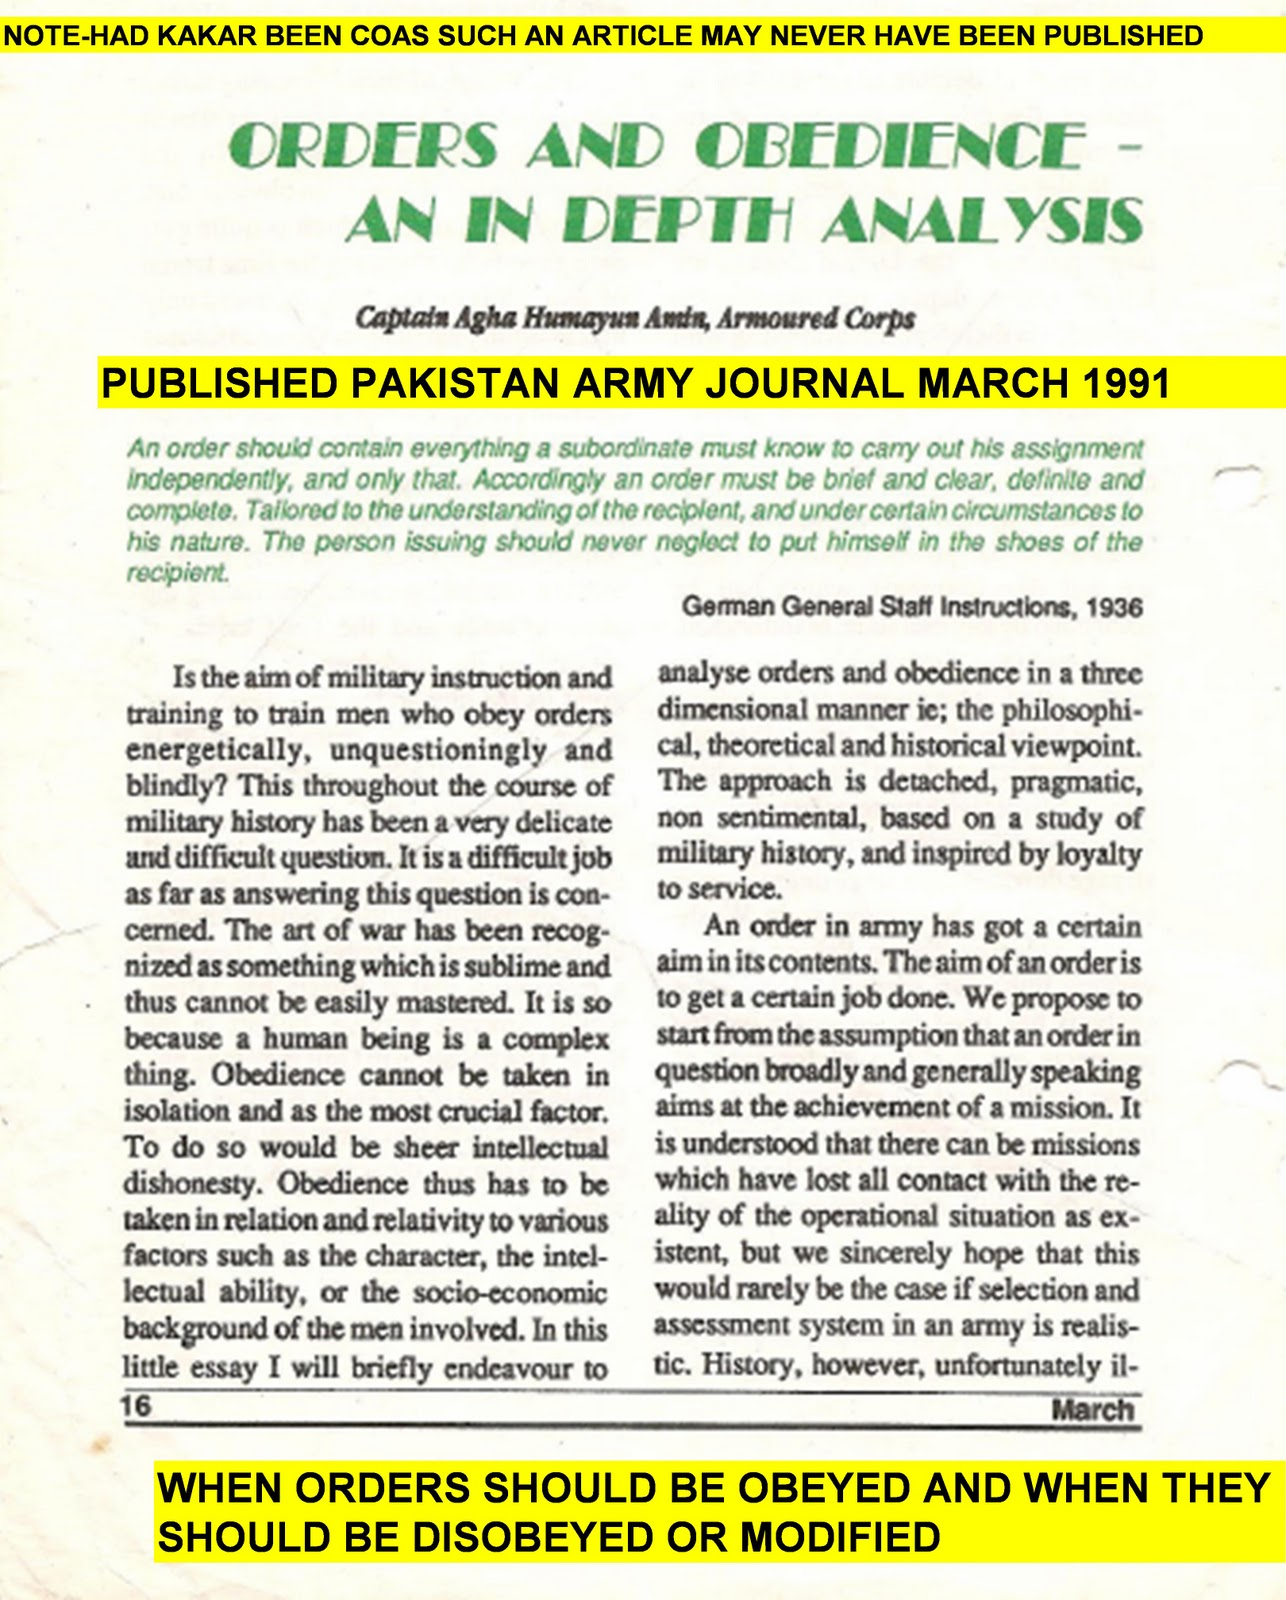 ms branch and the army is biggest conspiracy against originalty dynamism and boldness